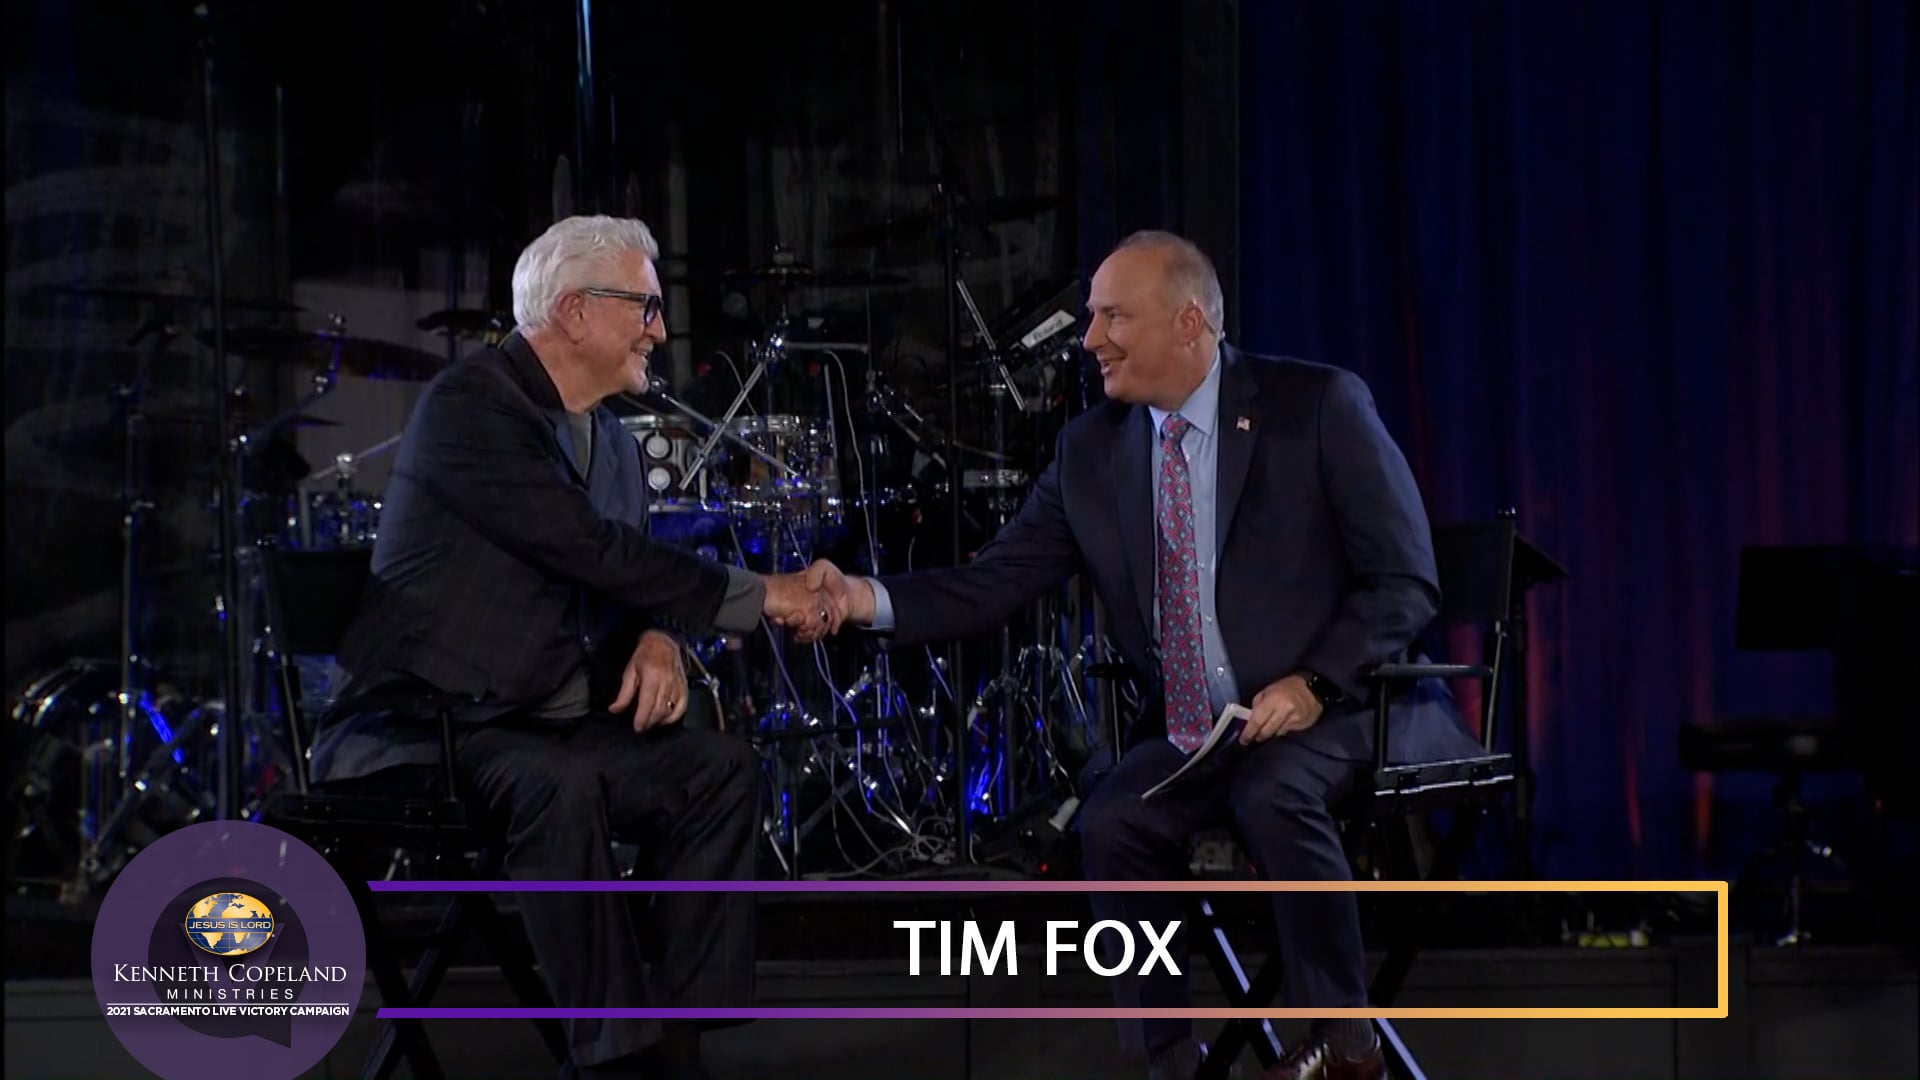 At the 2021 Sacramento Victory Campaign, join Tim Fox with pastors Dick Bernal and Bill Krause as they share how revival is happening worldwide, despite a pandemic! Hear how technology is helping to reach more people than ever with the gospel. See an exciting video about the history of Healing School.